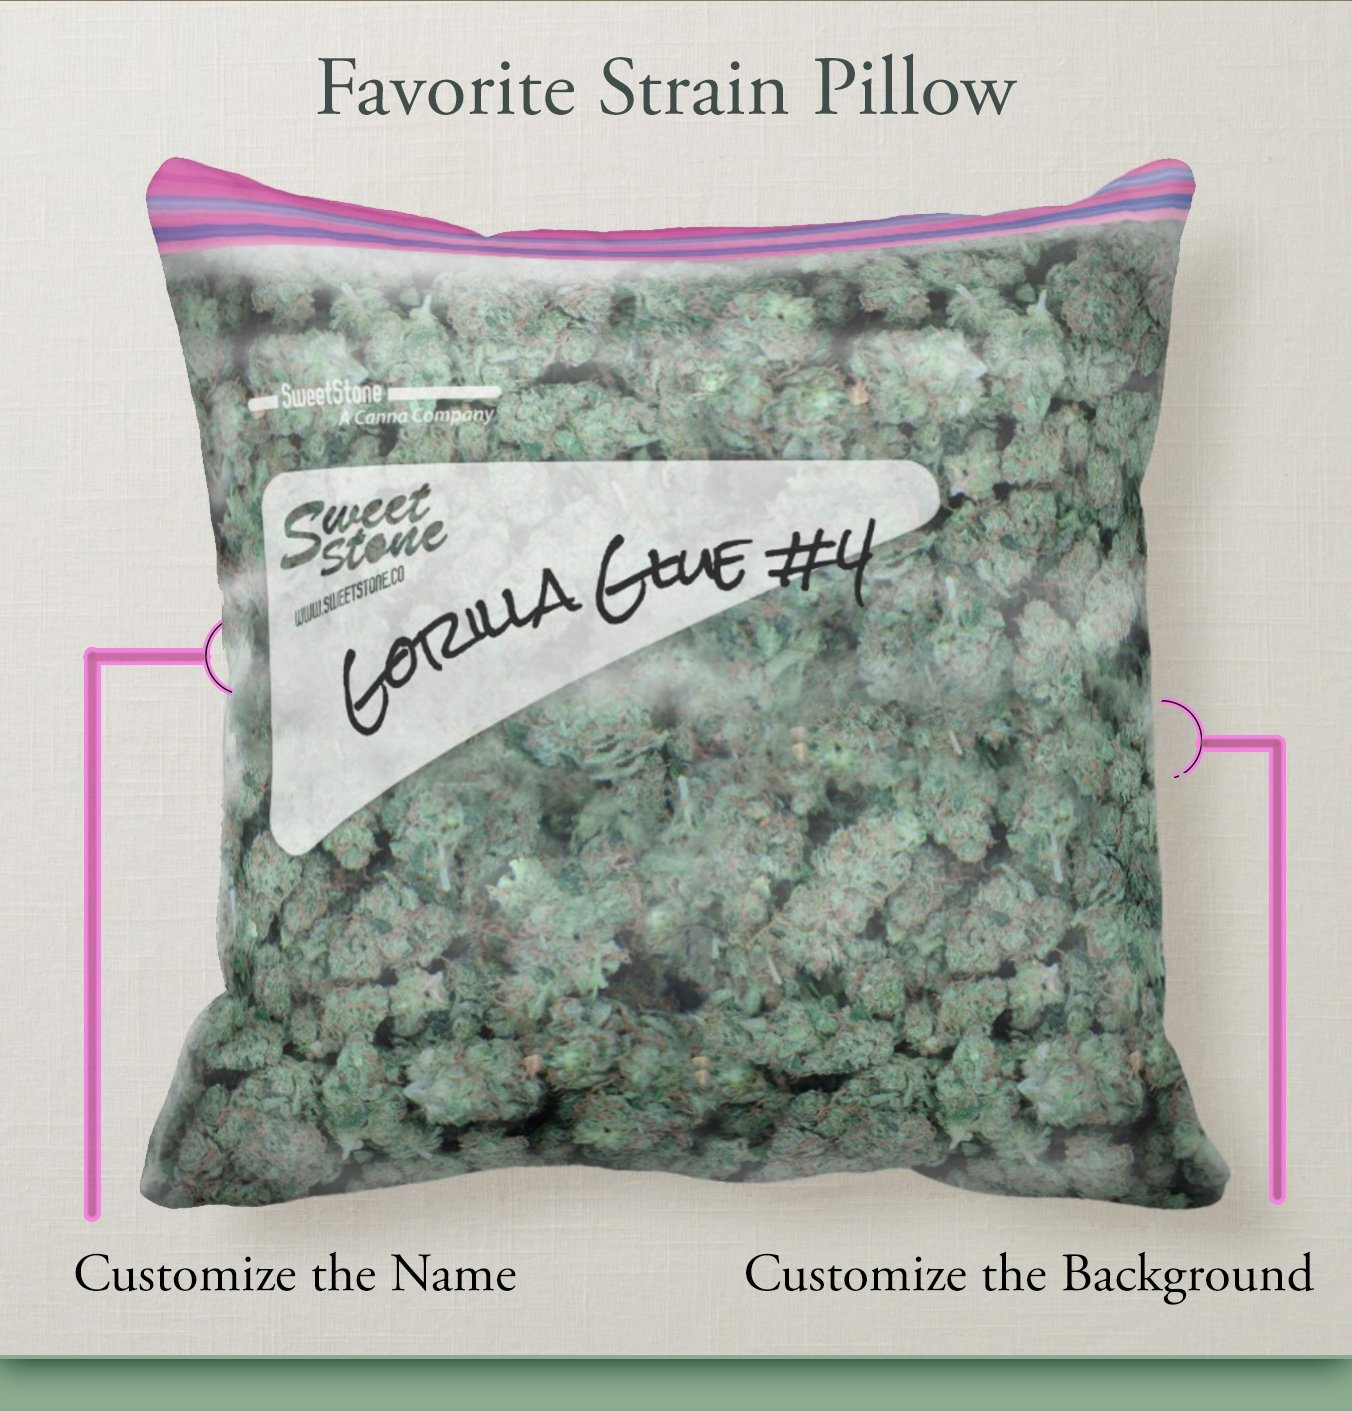 Pound of Weed Pillow haha